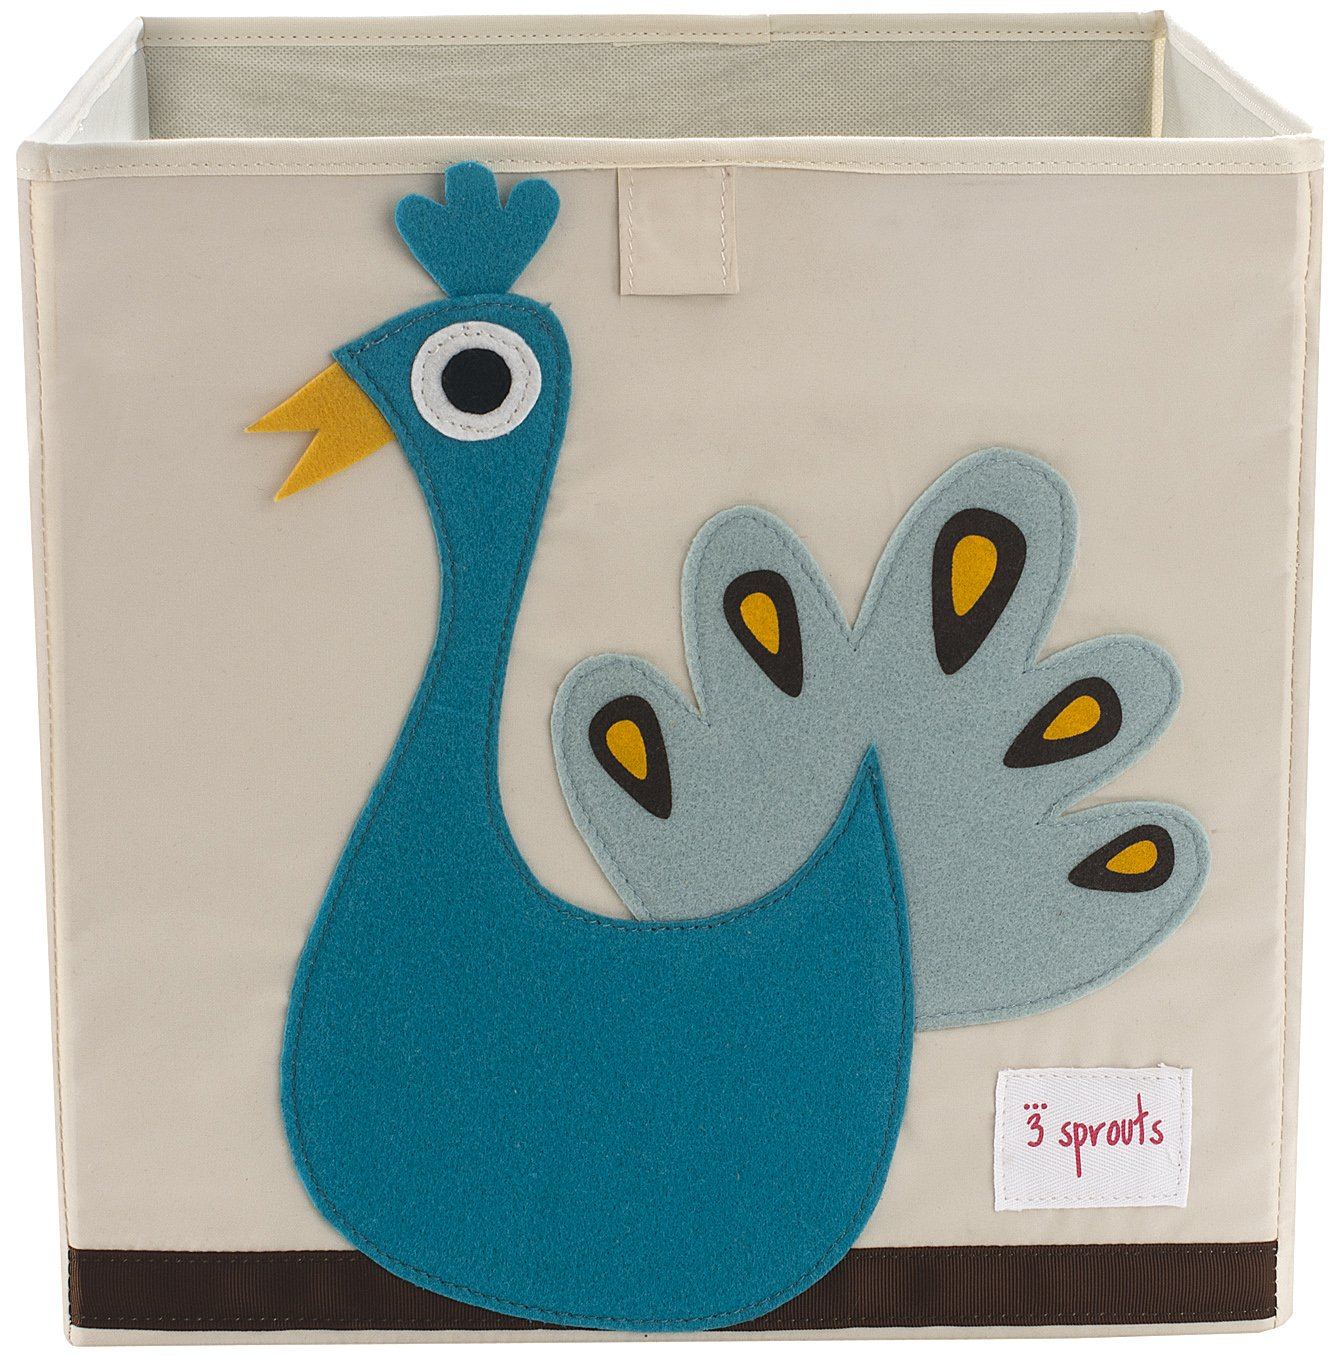 3 sprouts Storage Box, Blue Peacock Lulujo